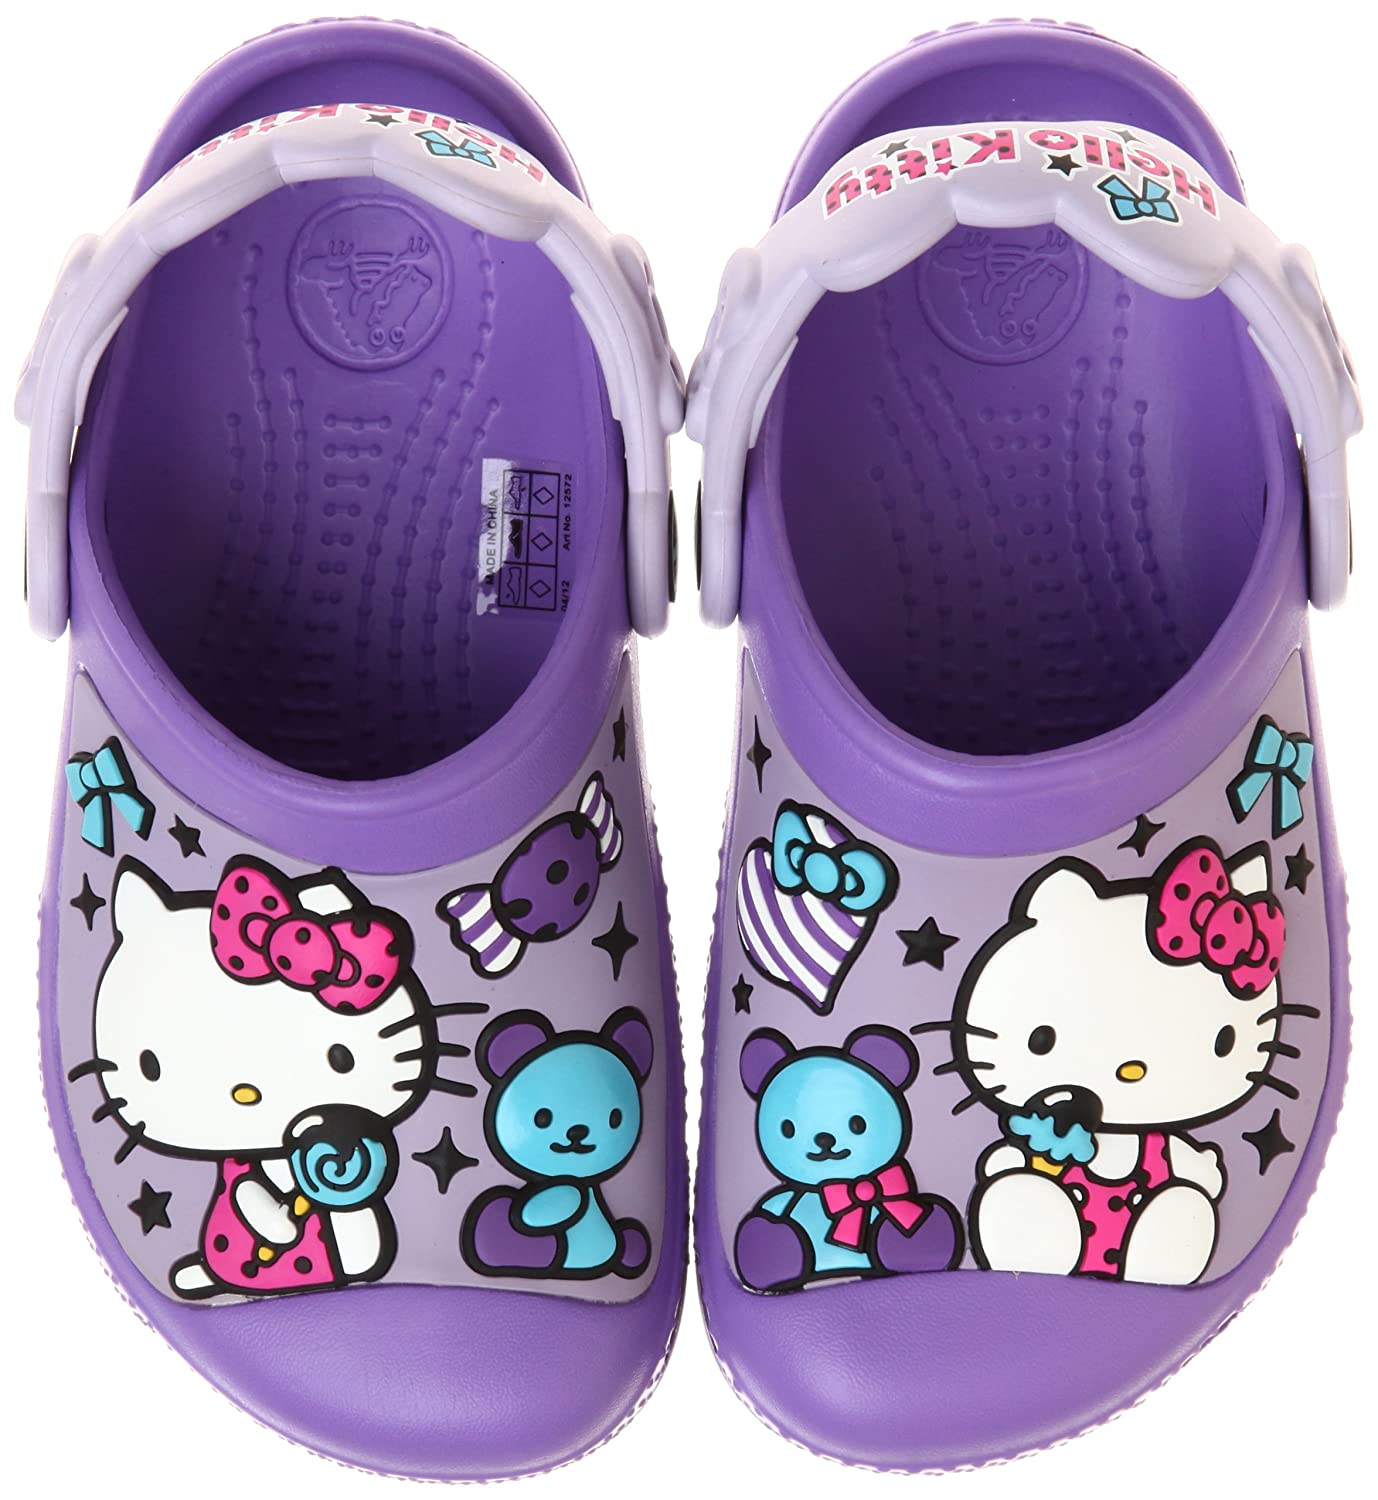 ce71488f36fa9a Crocs Kids Creative Hello Kitty Candy Ribbons Clog Mules And Sandal ...